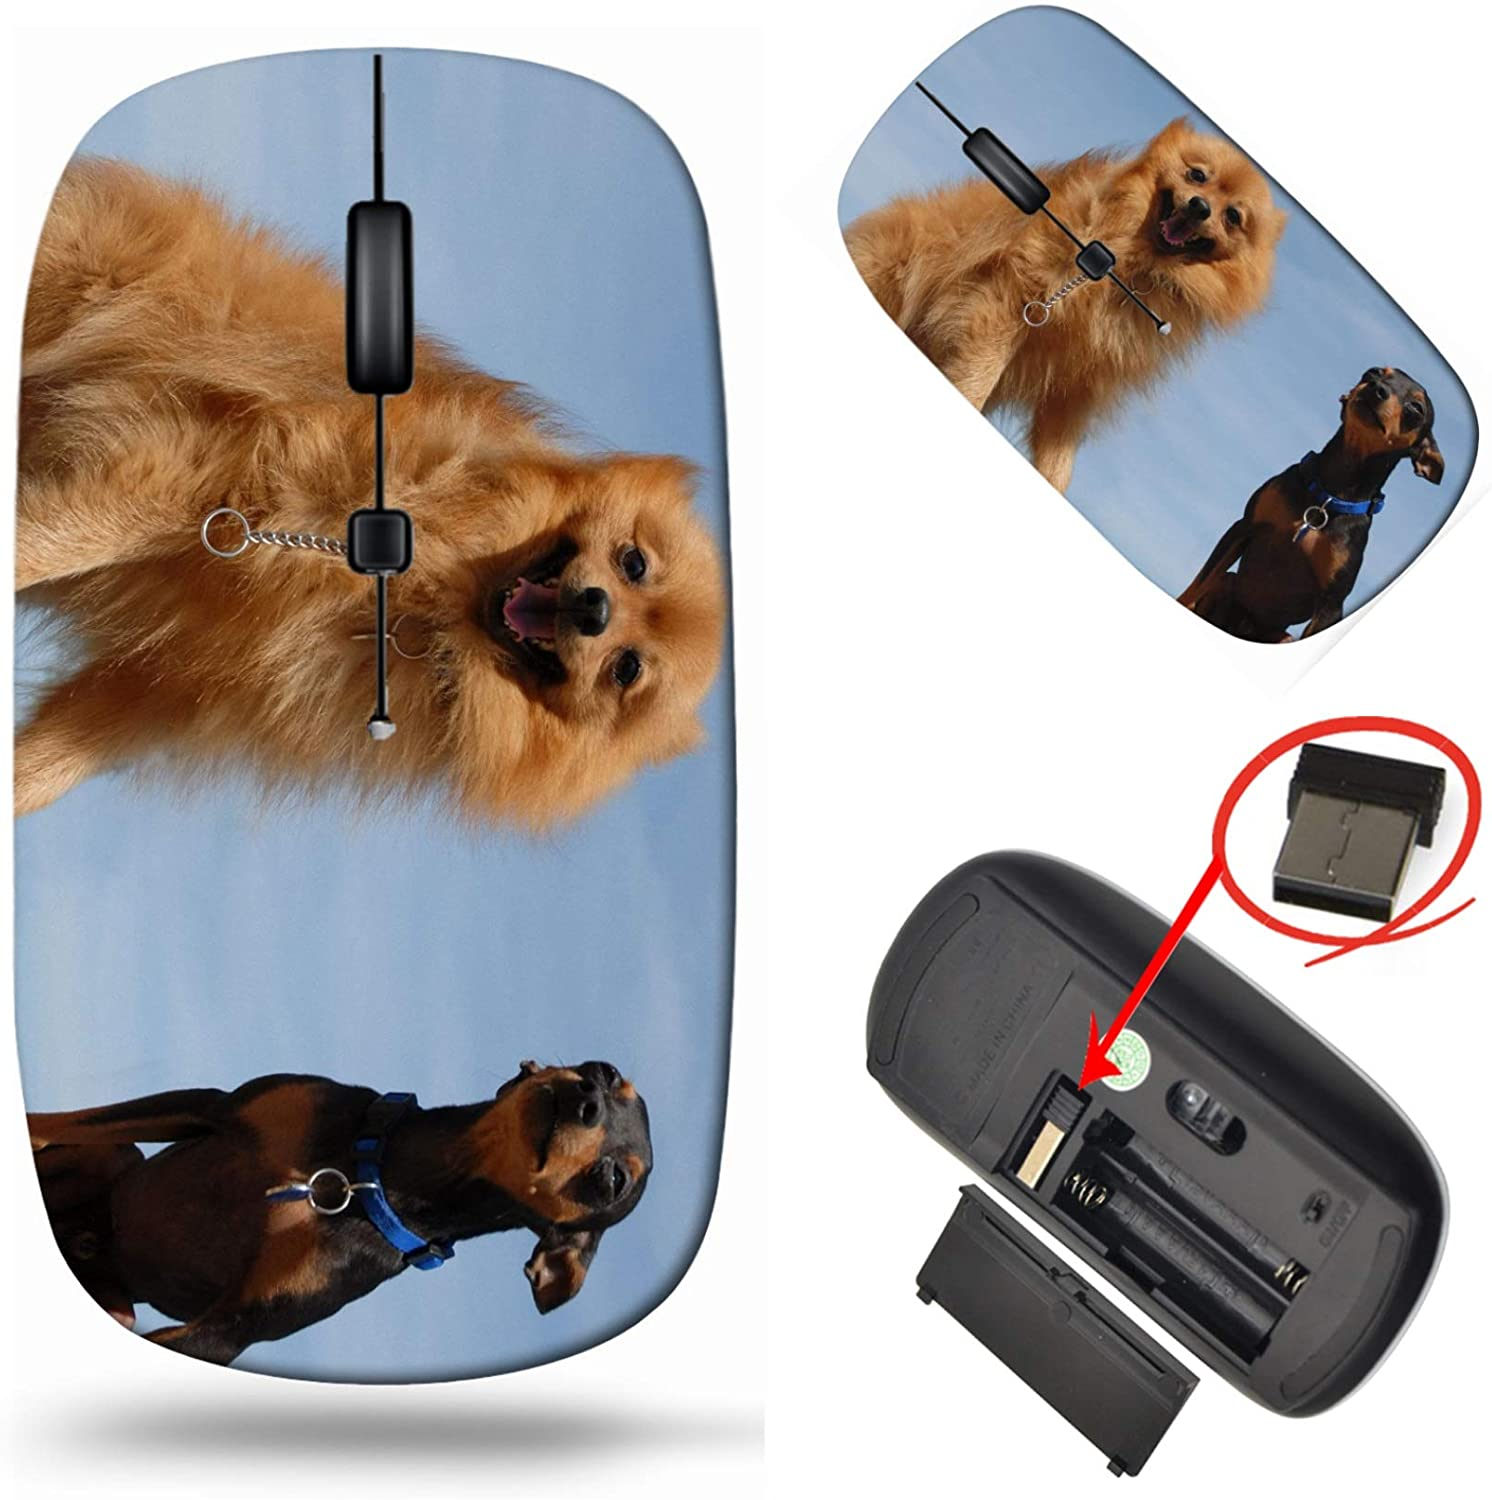 MSD Wireless Discount mail order Mouse Laptop 2.4G Travel with ...